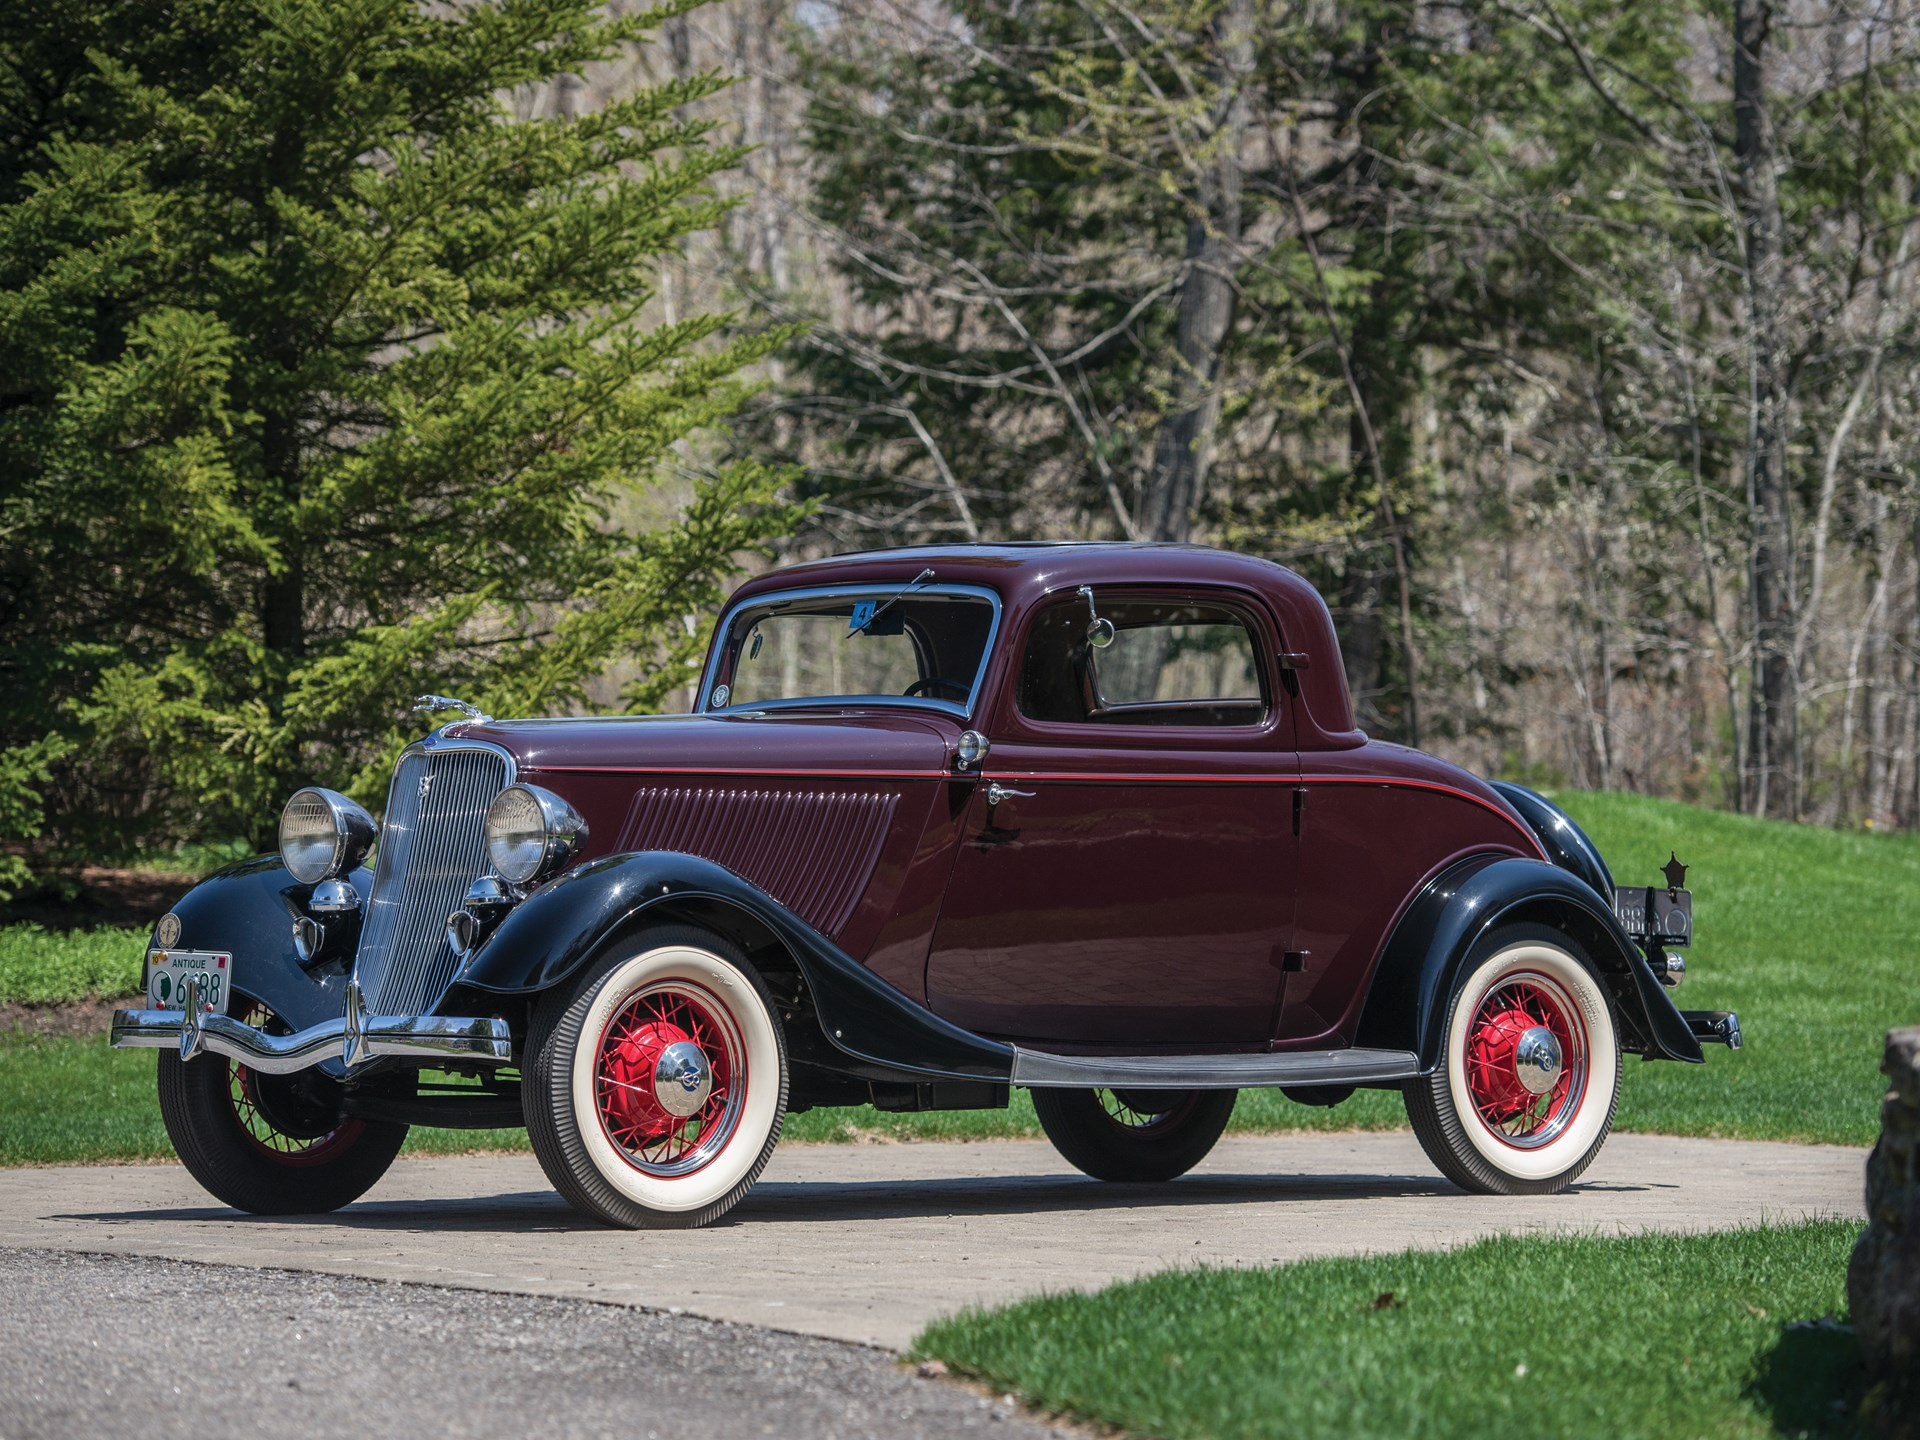 1933 Ford V-8 DeLuxe Three-Window Coupe